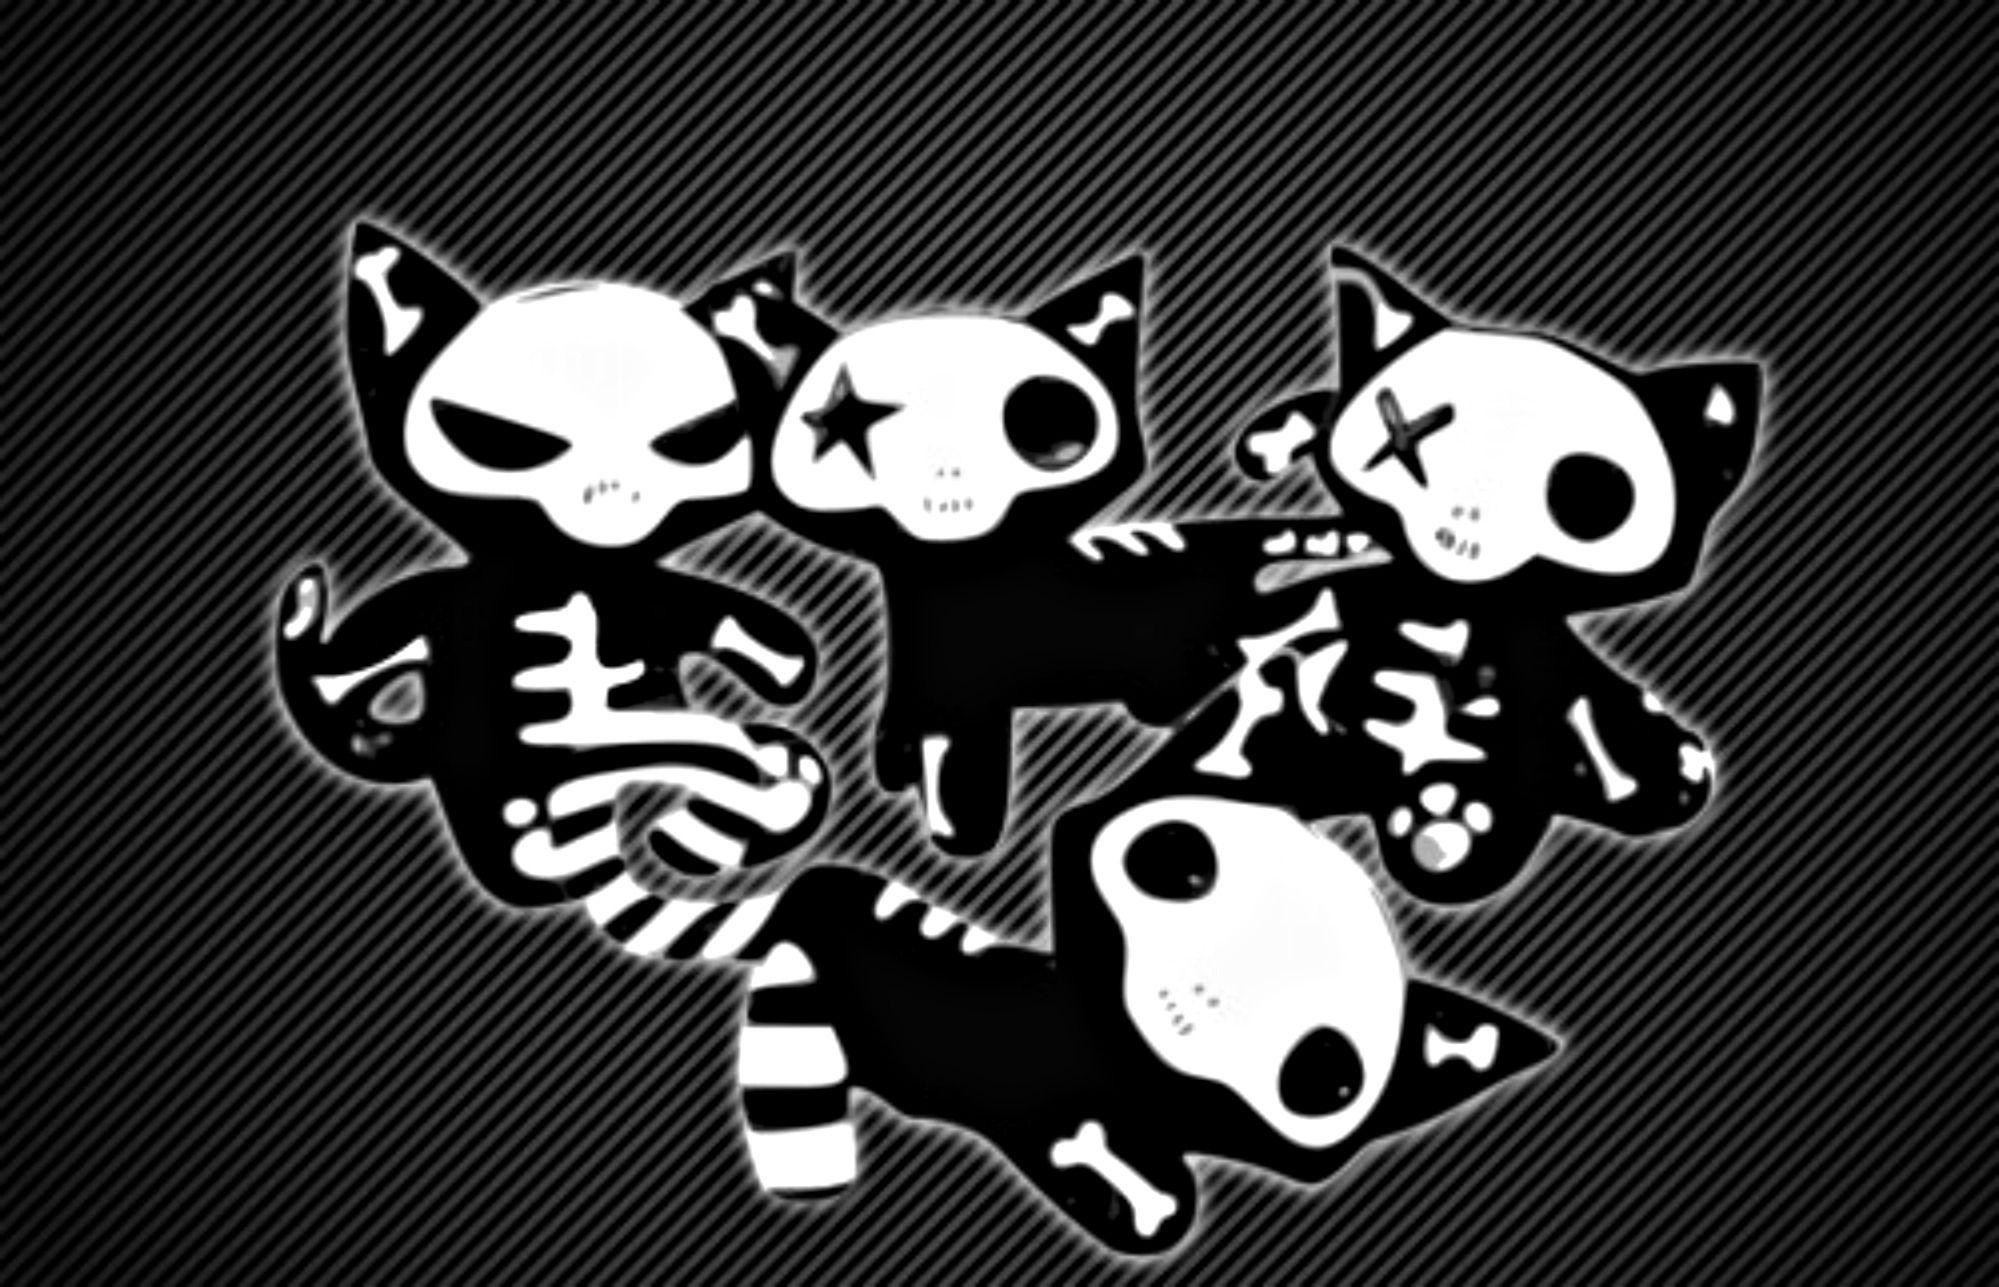 Girly Skull Wallpapers for (Android) Free Download on MoboMarket